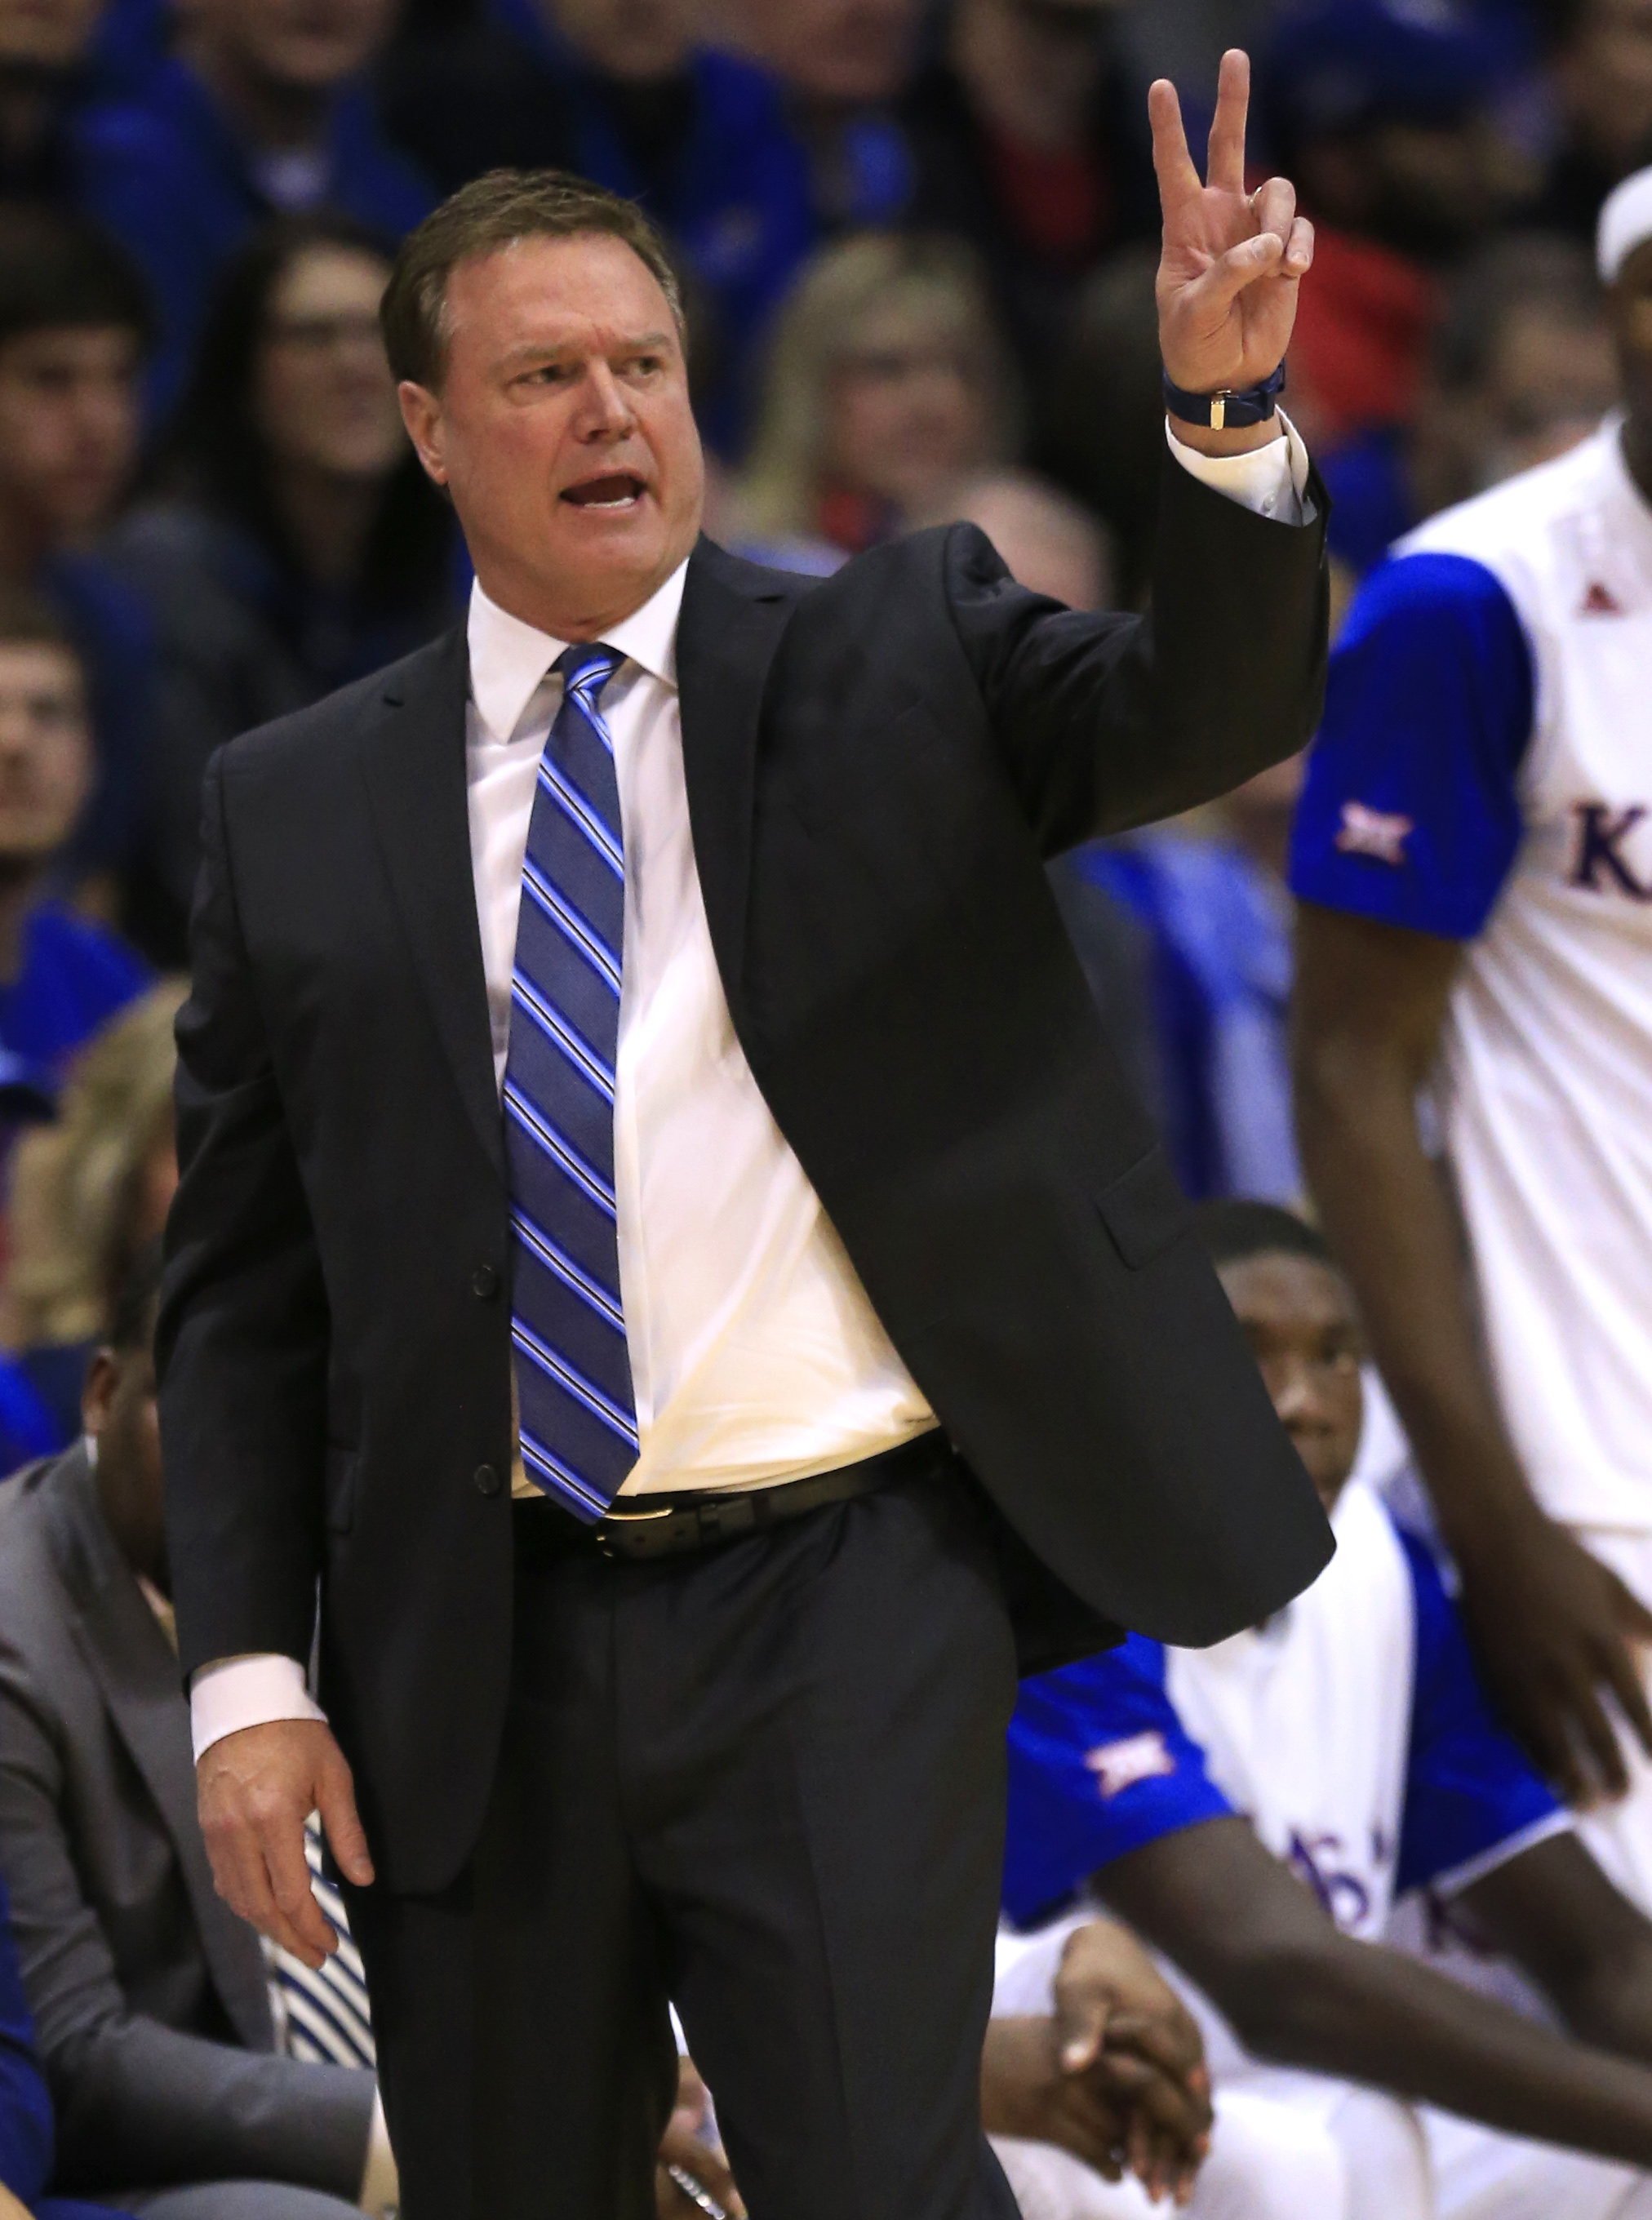 Kansas head coach Bill Self calls a play during the first half of an NCAA college basketball game against Kansas State in Lawrence, Kan., Wednesday, Feb. 3, 2016. (AP Photo/Orlin Wagner)